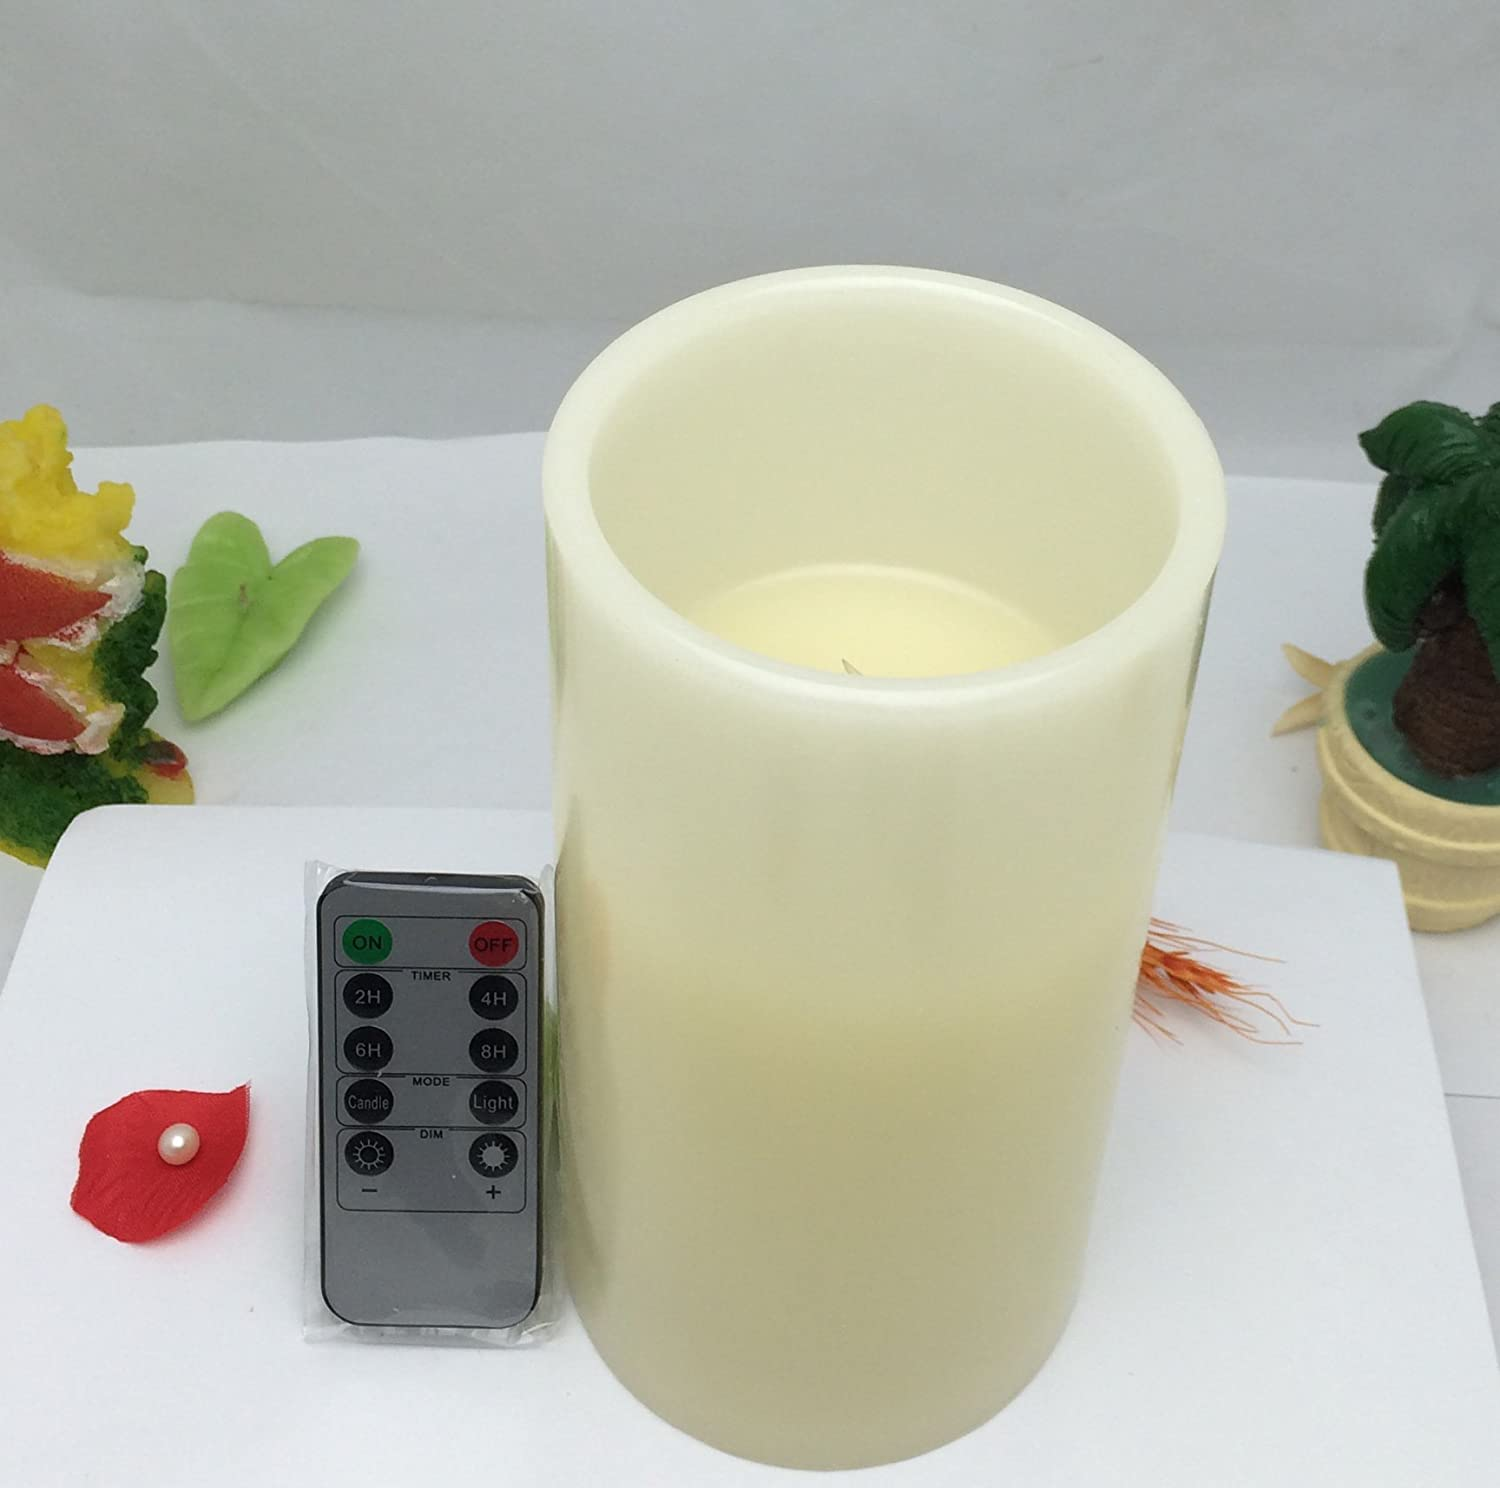 LargeアイボリーFlameless LED Candle with自動サイクル時間 – バニラ香りつきリモートバッテリーキャンドルセットの1 – 4 x 6inch B011DQUVPS